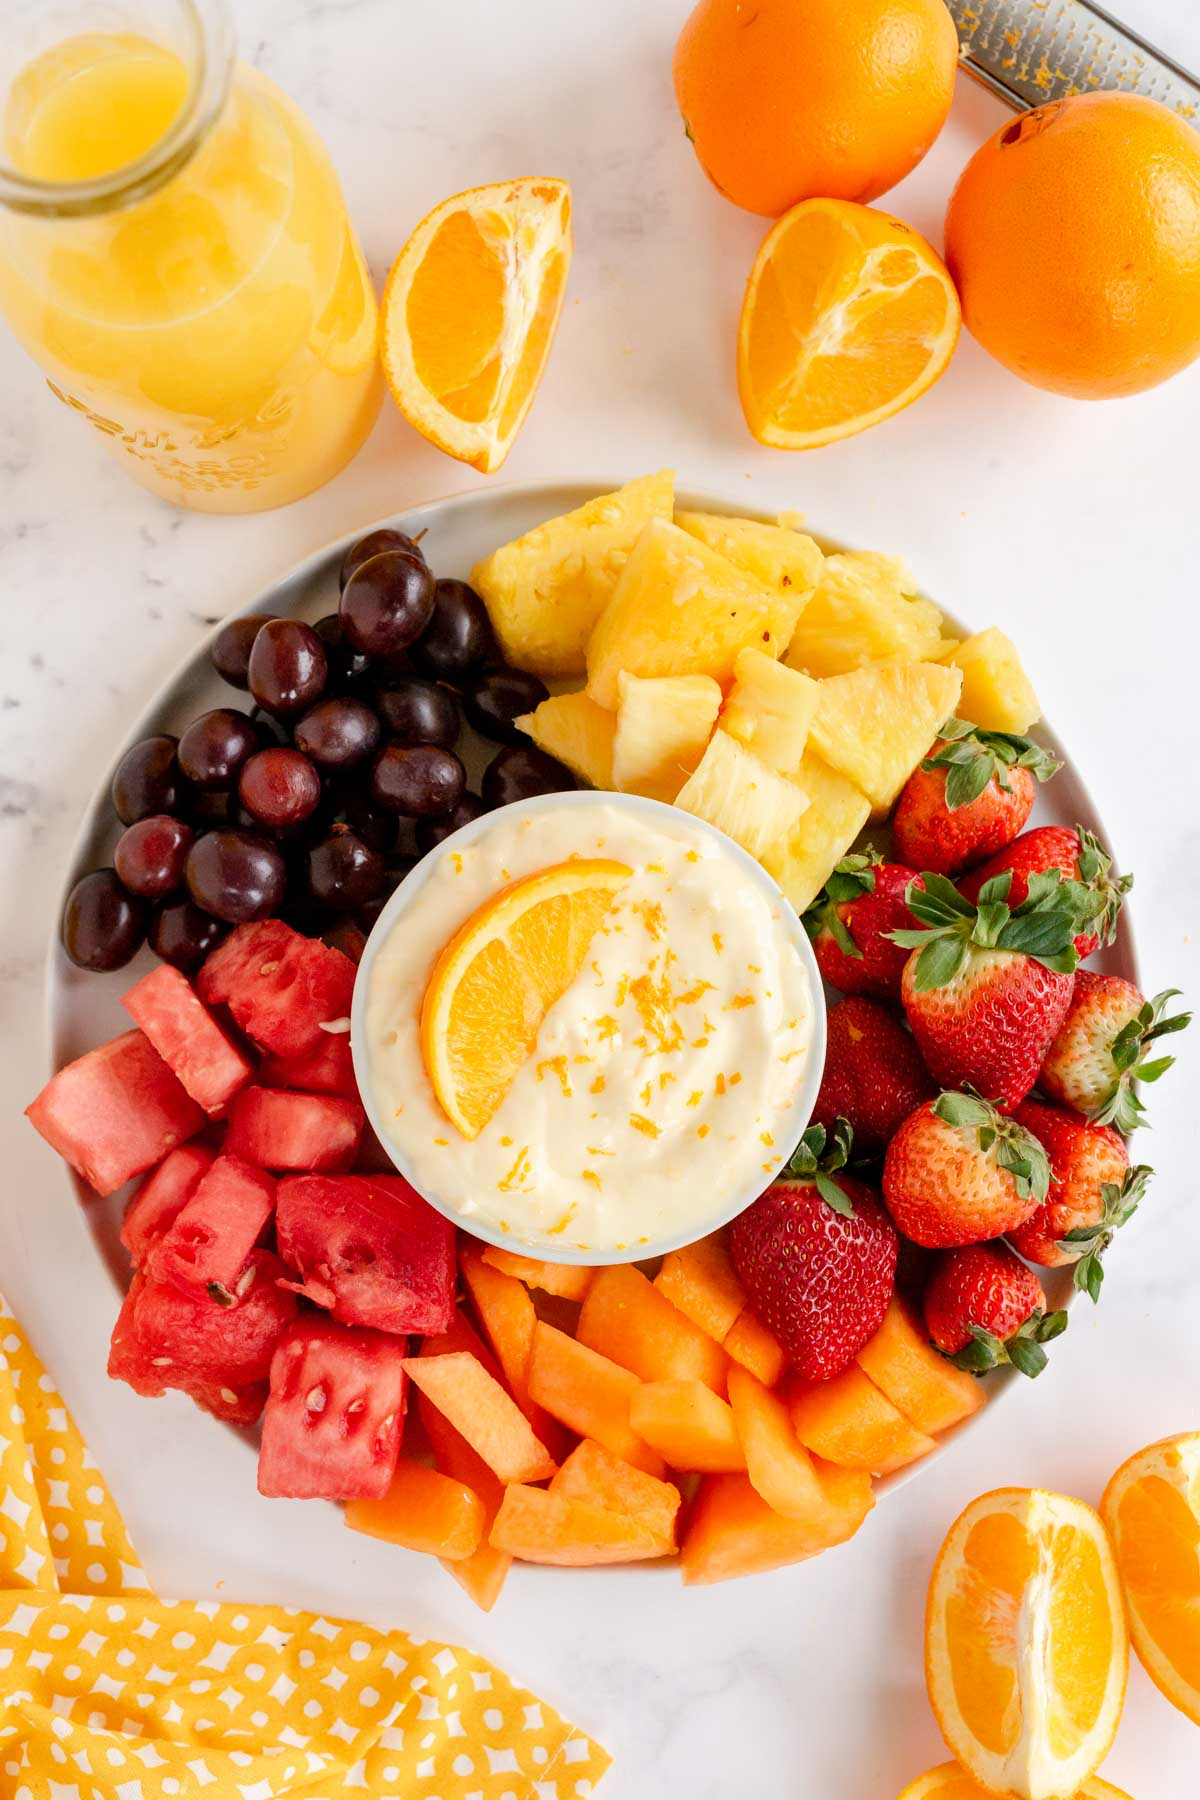 tray of fruit with a bowl of fruit dip in the middle